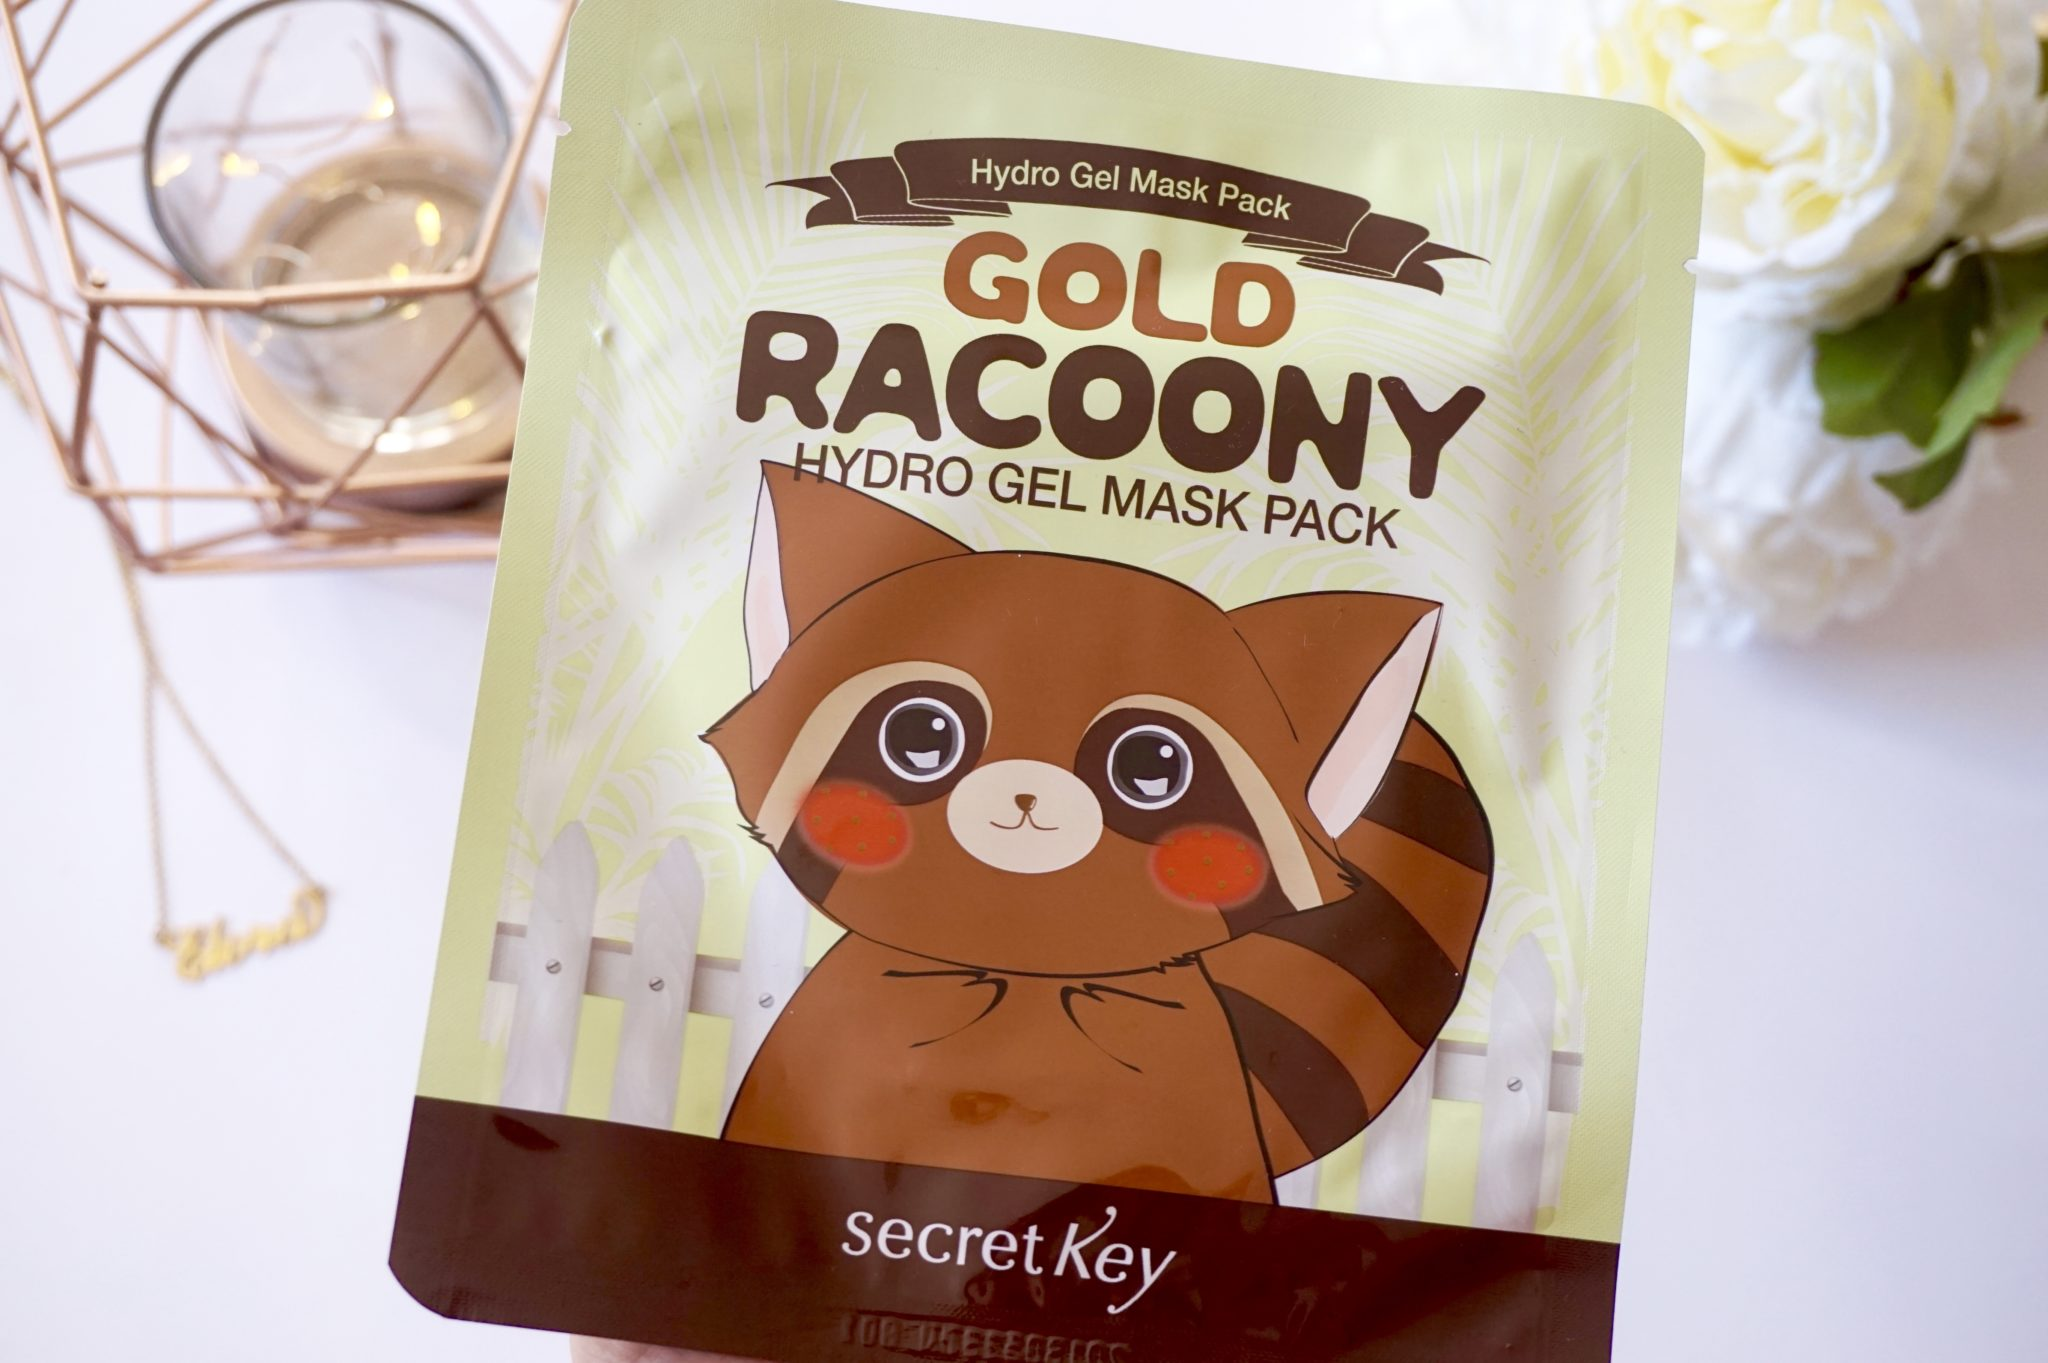 Masque coréen hydratant Gold Racoony par Secret Key